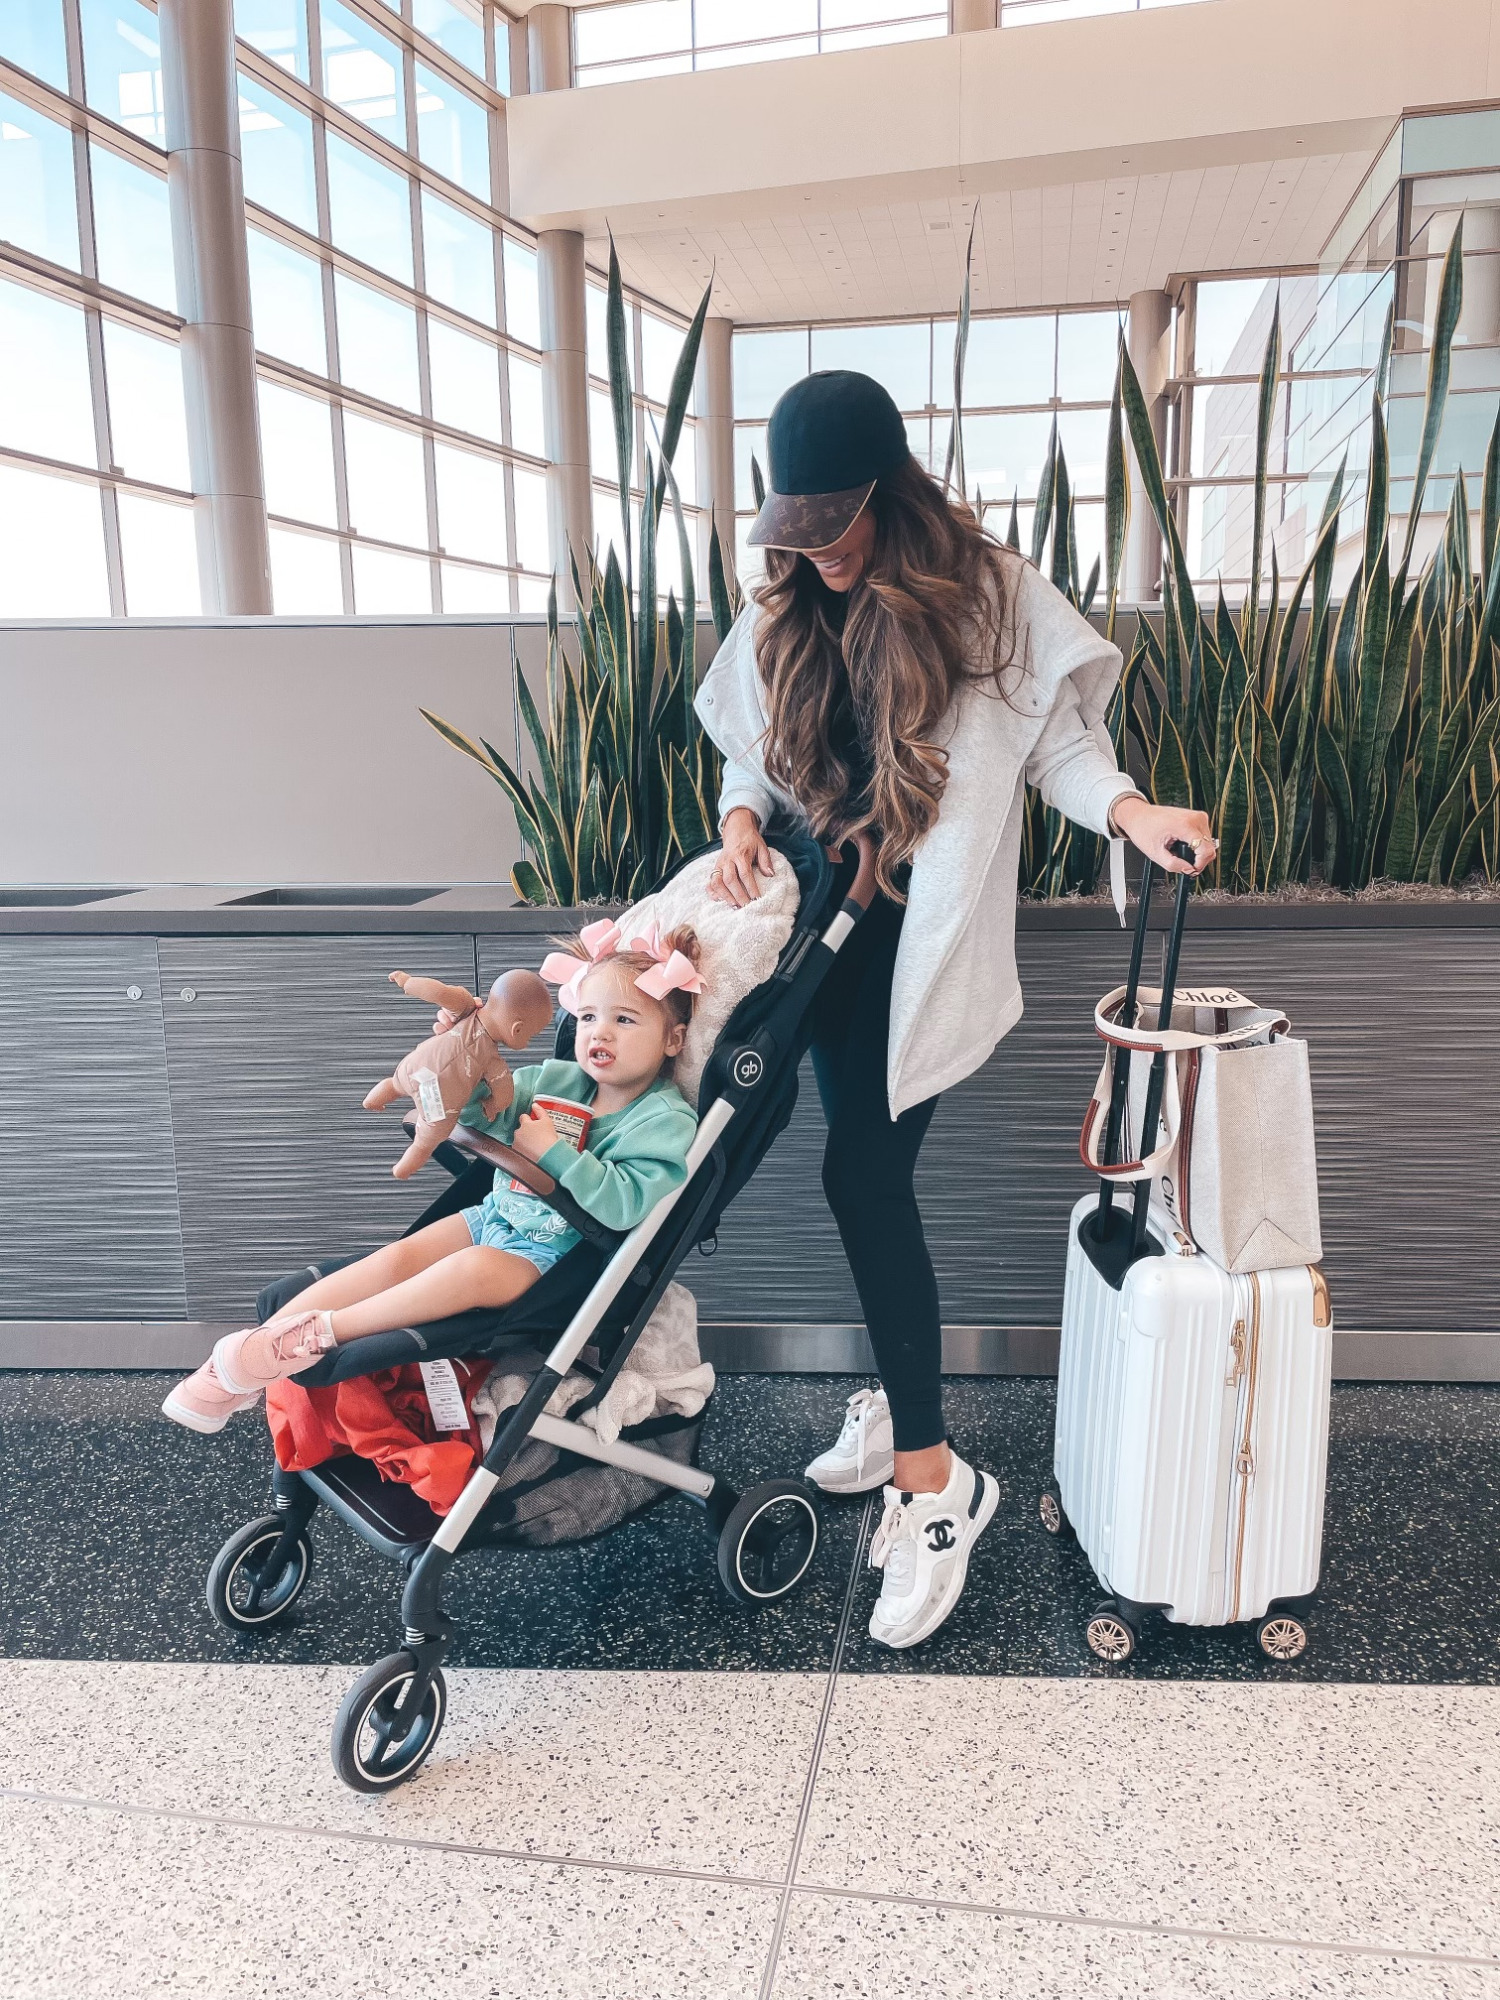 Emily Ann Gemma, Travel outfit, airport outfit, white and gold suitcase, Lululemon leggings, Chanel sneakers, casual outfit, hiking outfit